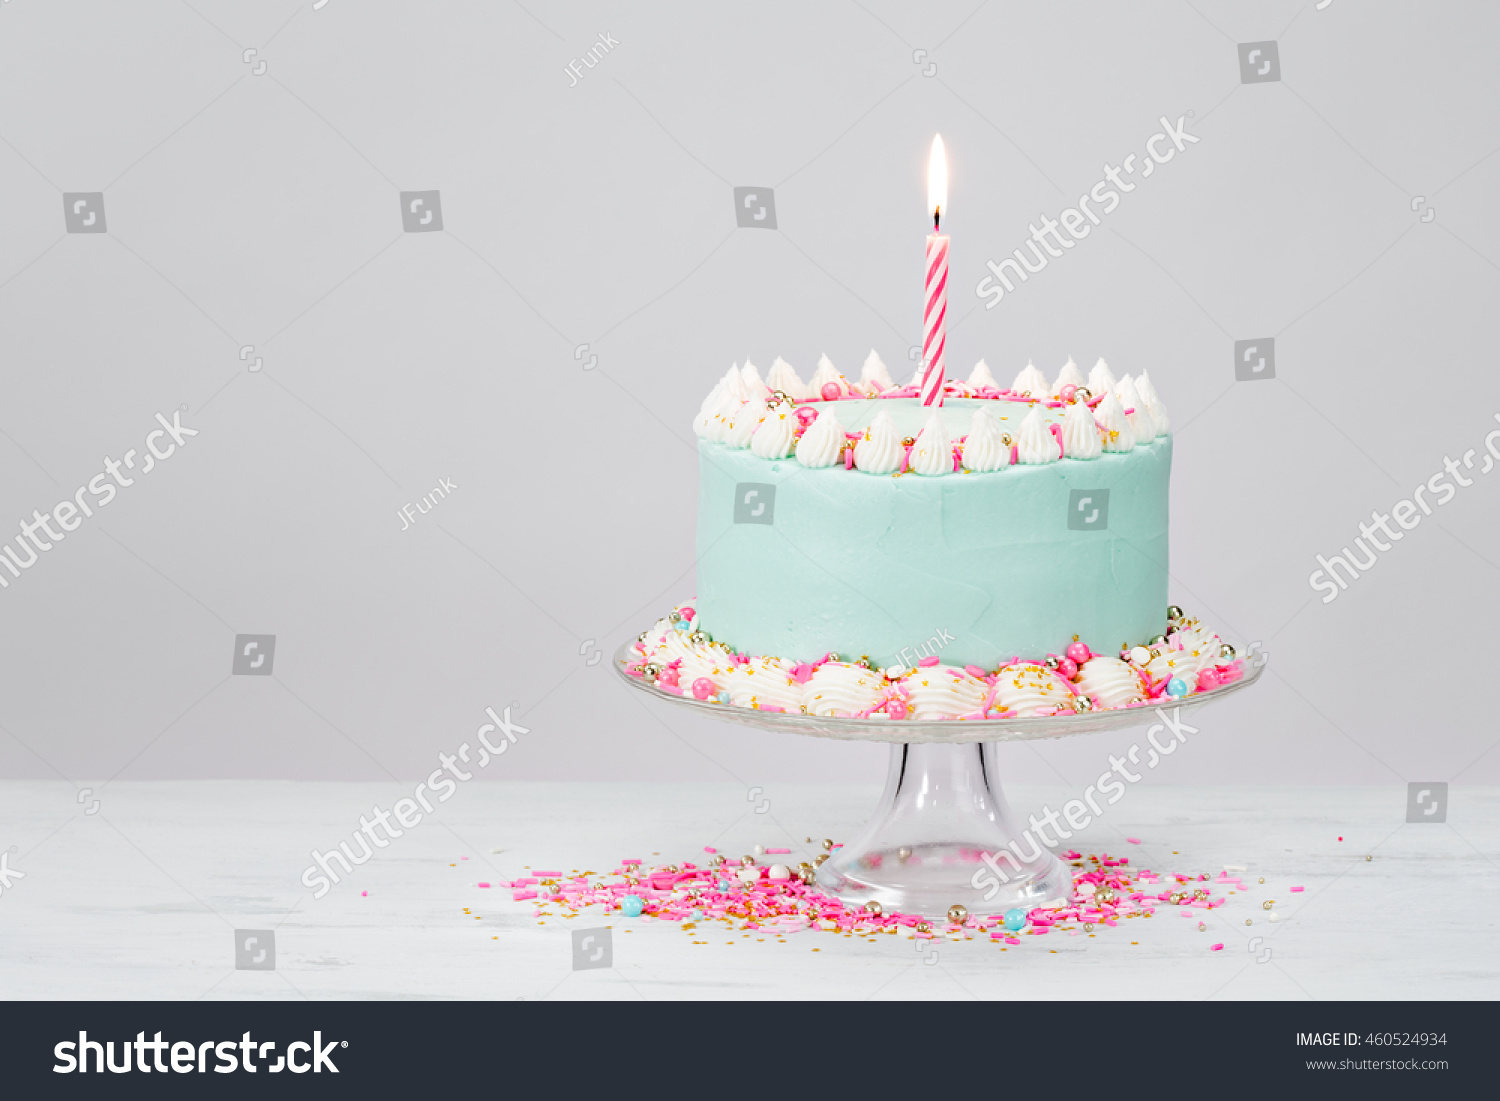 Pastel Blue Birthday Cake With Pink Sprinkles Over White Background